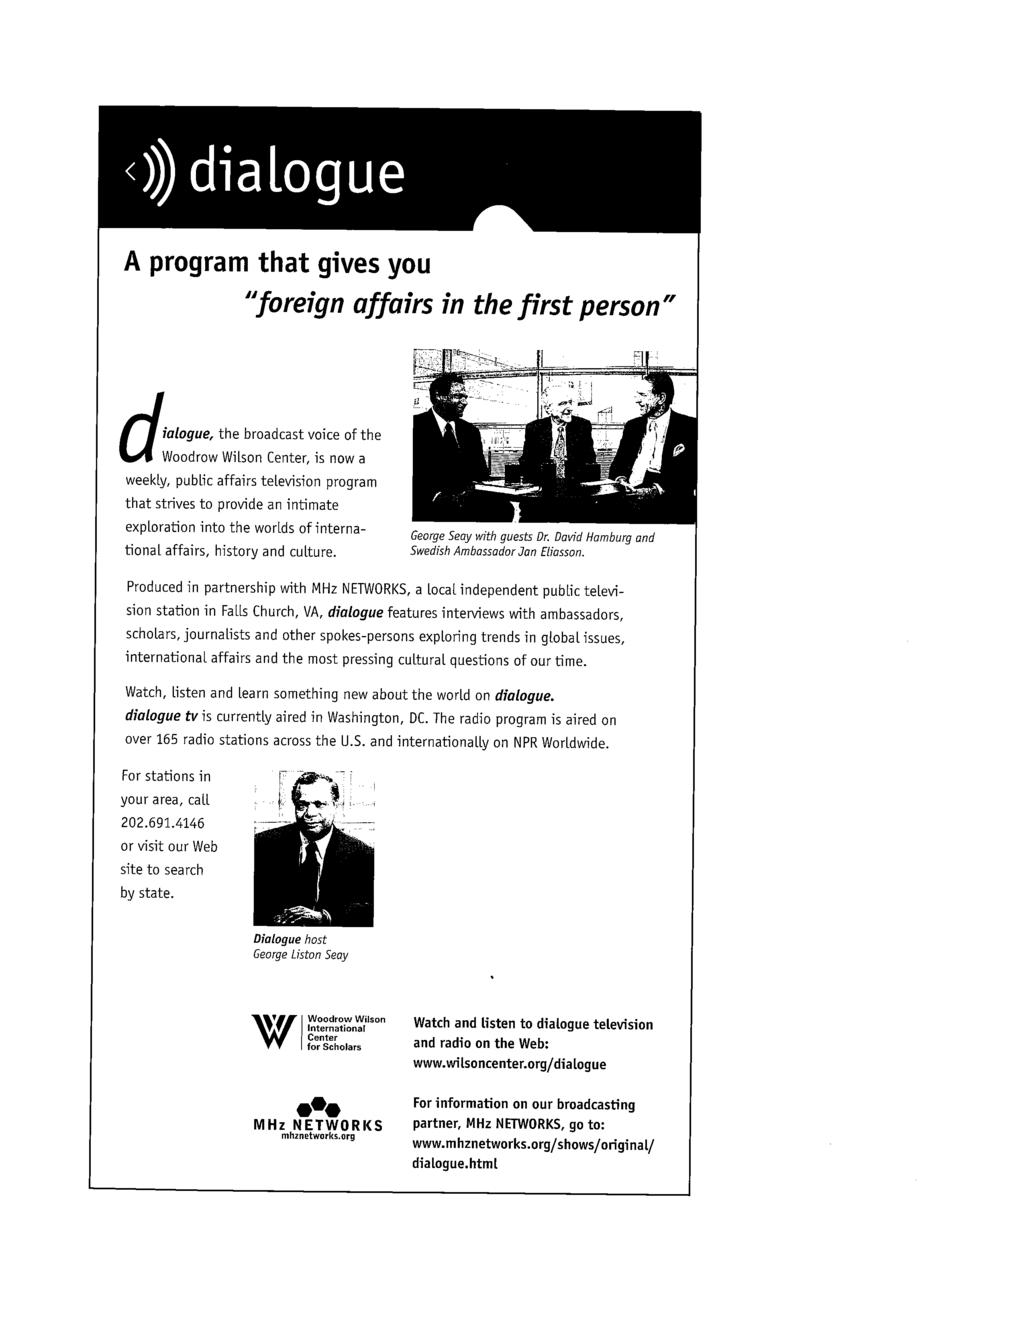 "~II A program that gives you ""foreign affairs in the first person"" d ialogue, the broadcast voice of the Woodrow Wilson Center, is now a weekly, public affairs television program that strives to"